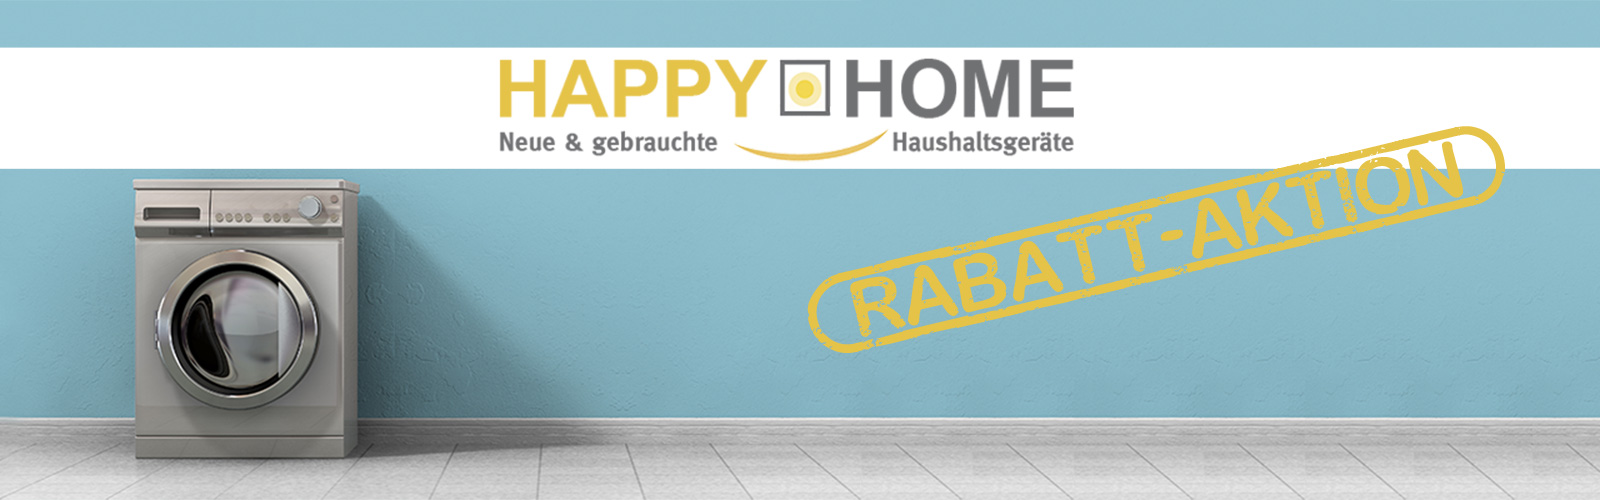 Happy Home Köln - zur Rabattaktion